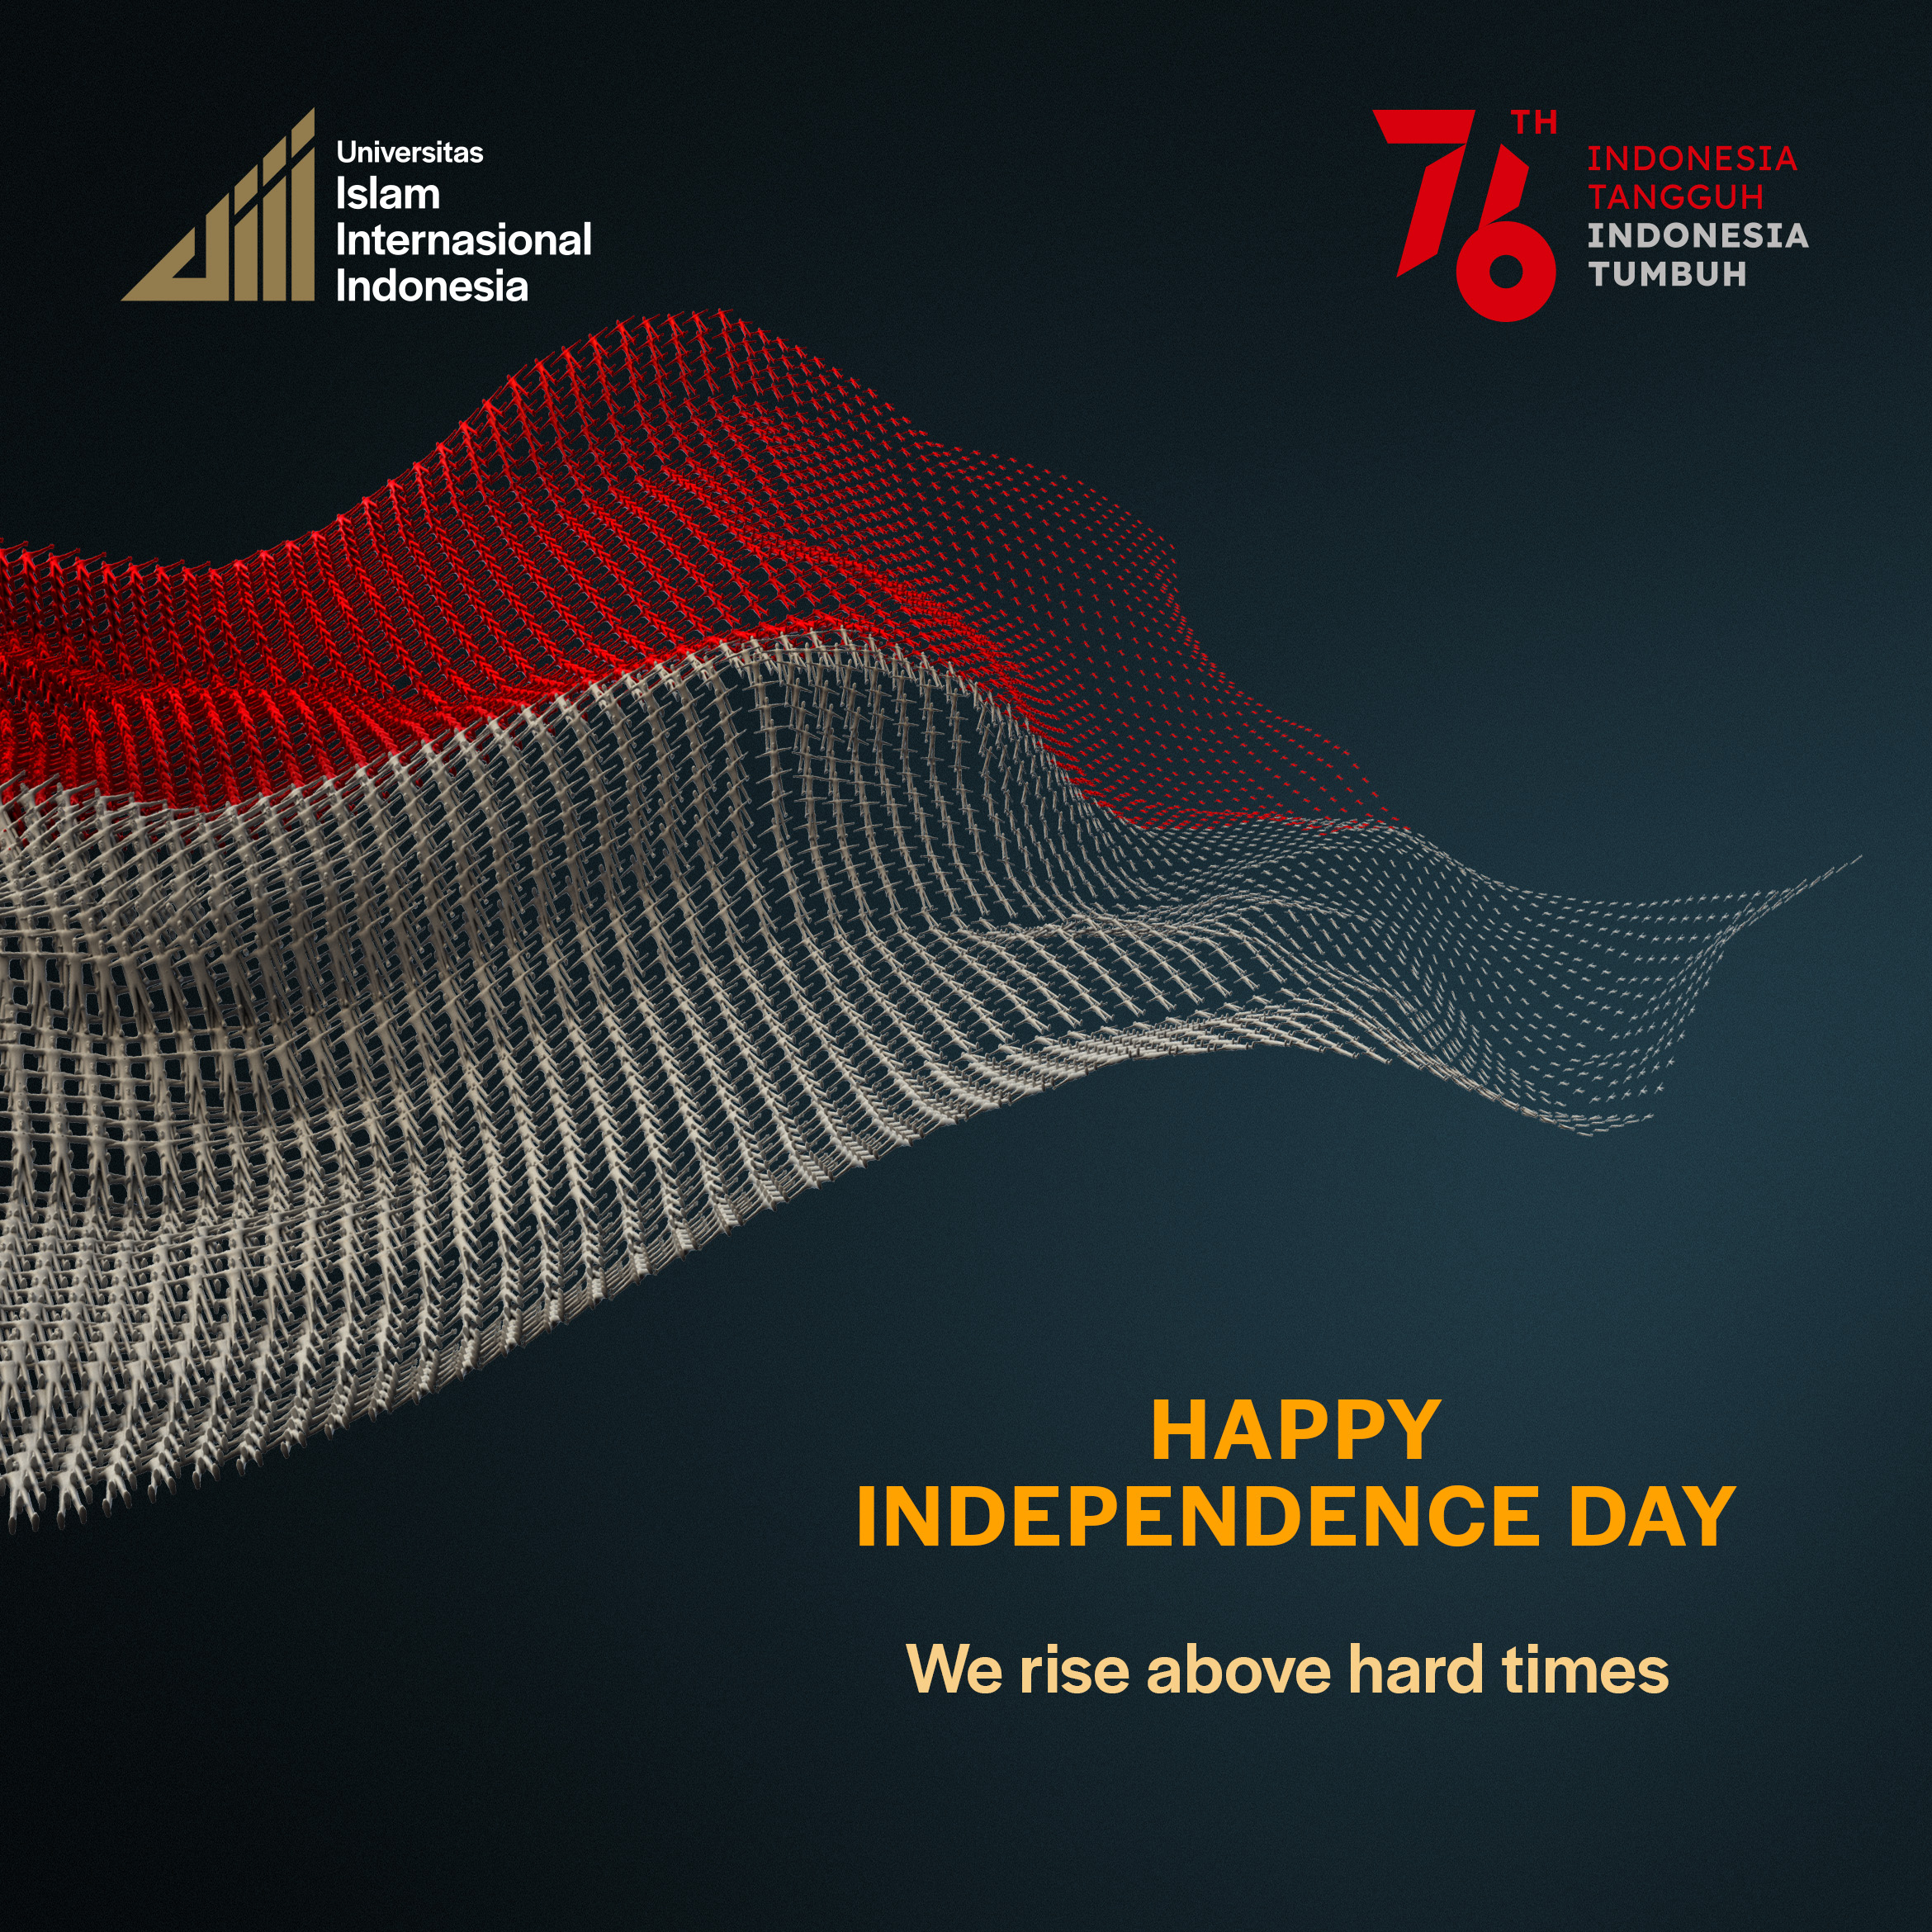 Happy Independence Day, Indonesia!